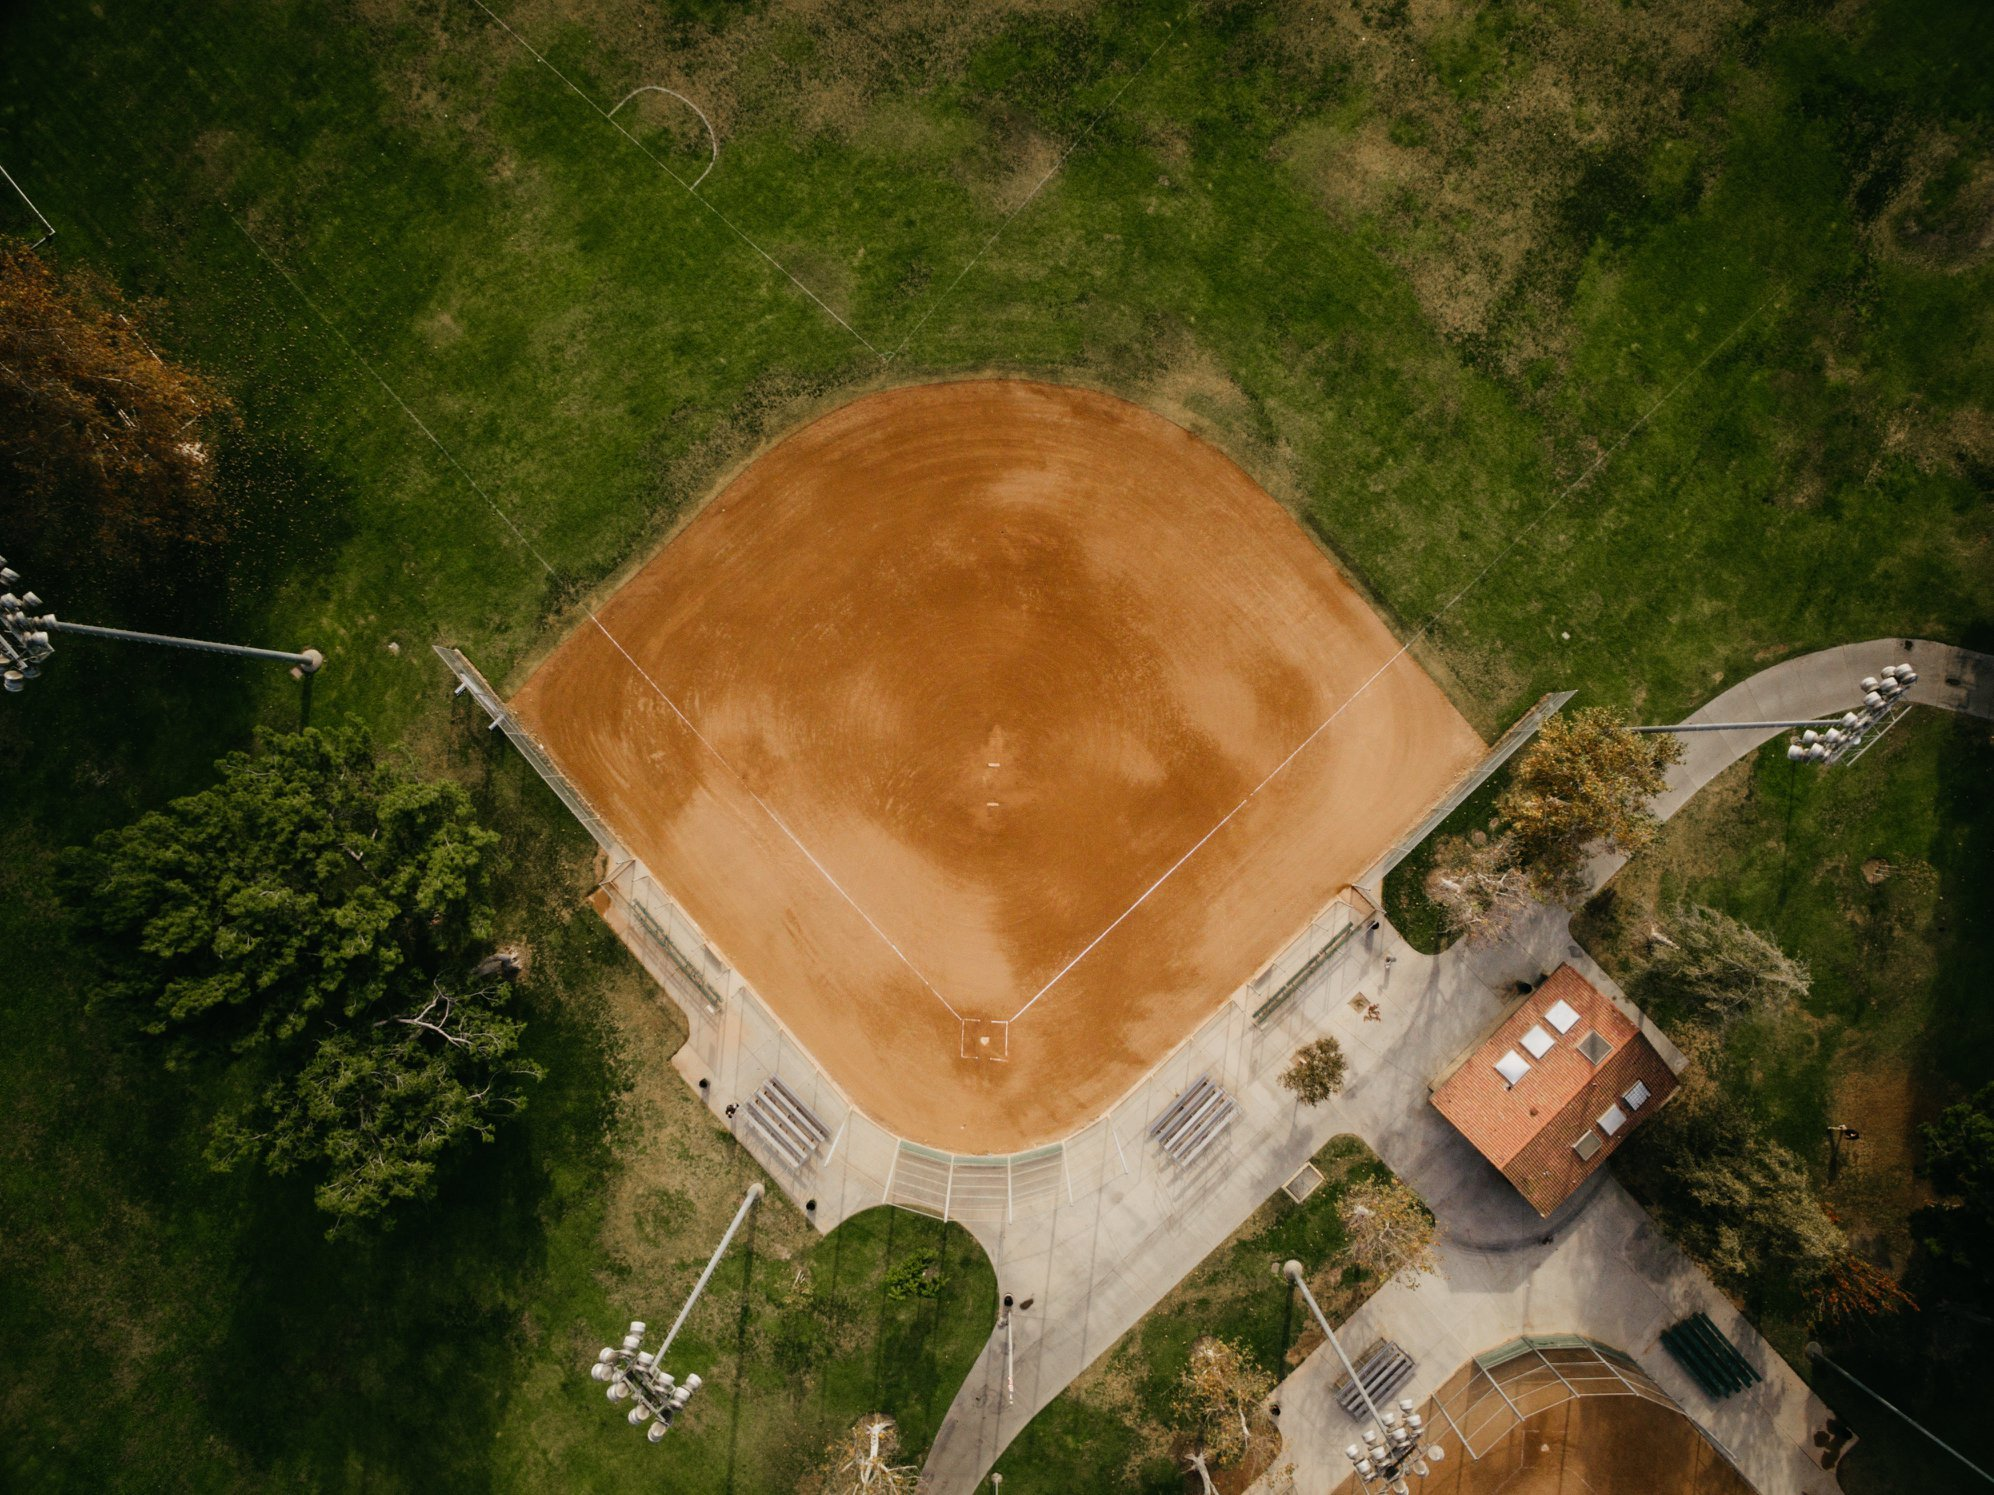 Field of dreams: if you build it, will they come? PHOTO BY FRANCISCO GONZALEZ ON UNSPLASH